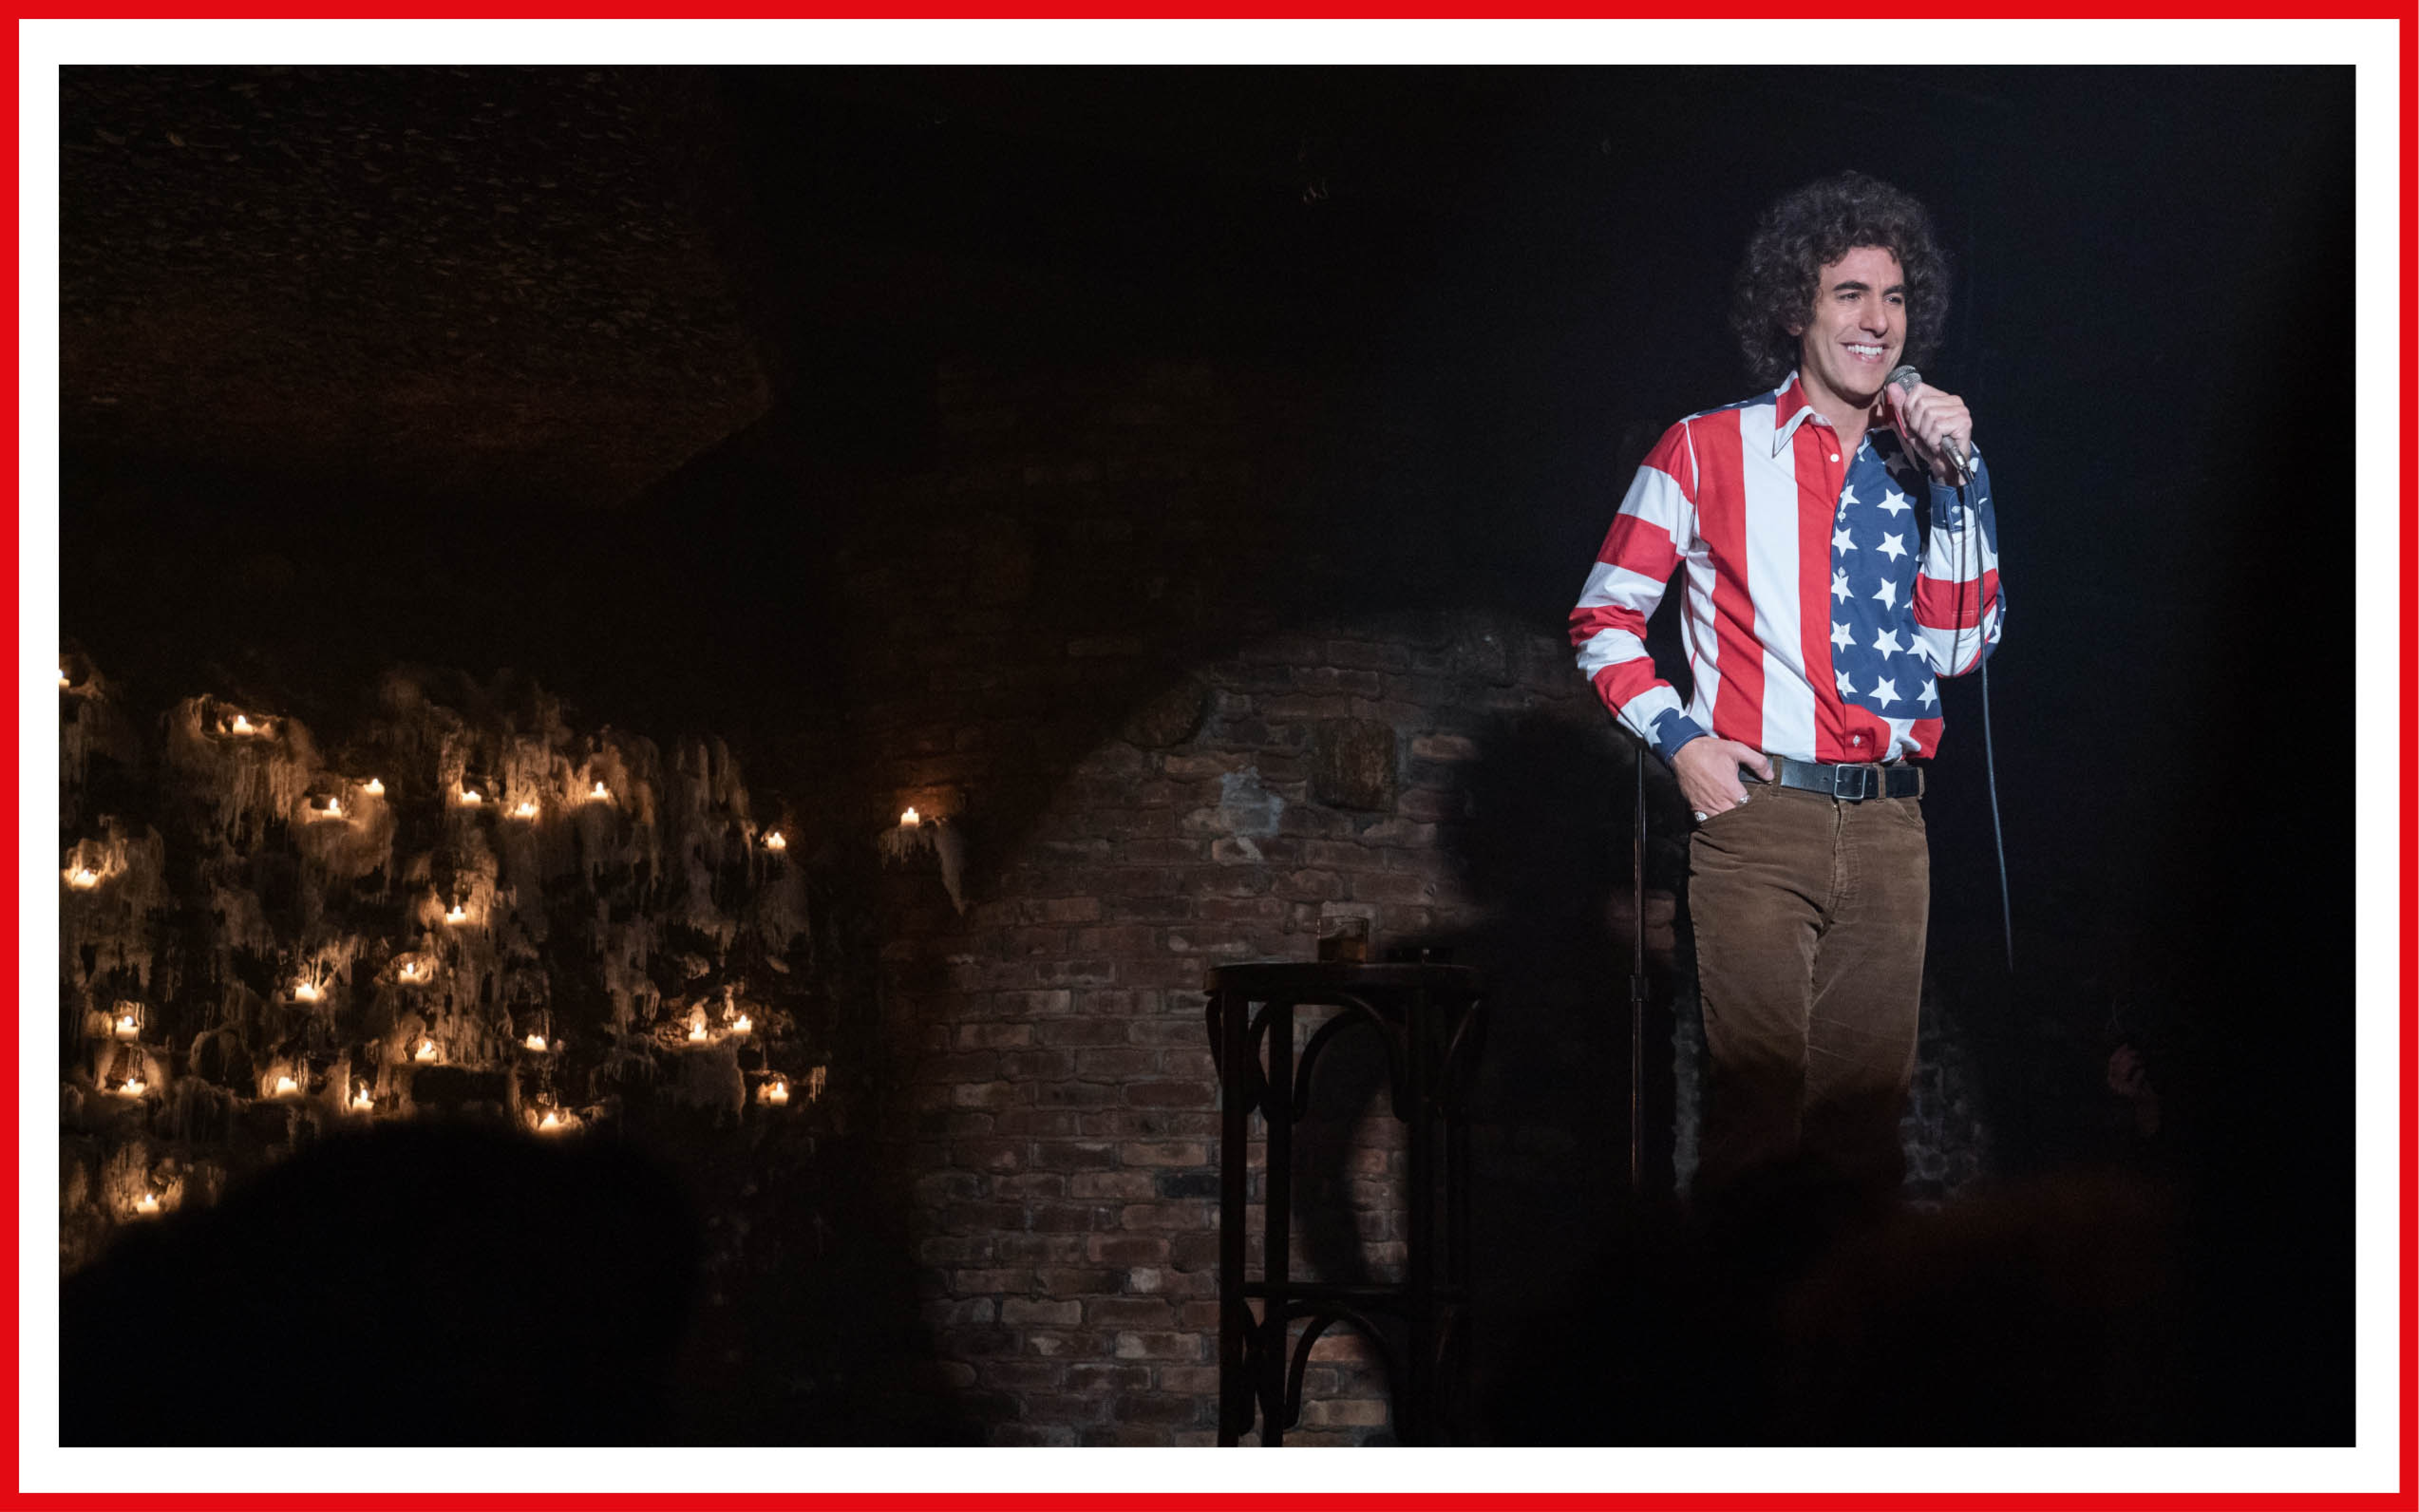 Sacha Baron Cohen, as Abbie Hoffman, stands grinning at a mic, wearing an extremely loud American-flag shirt. The sleeves are stripes, the cuffs are stars.